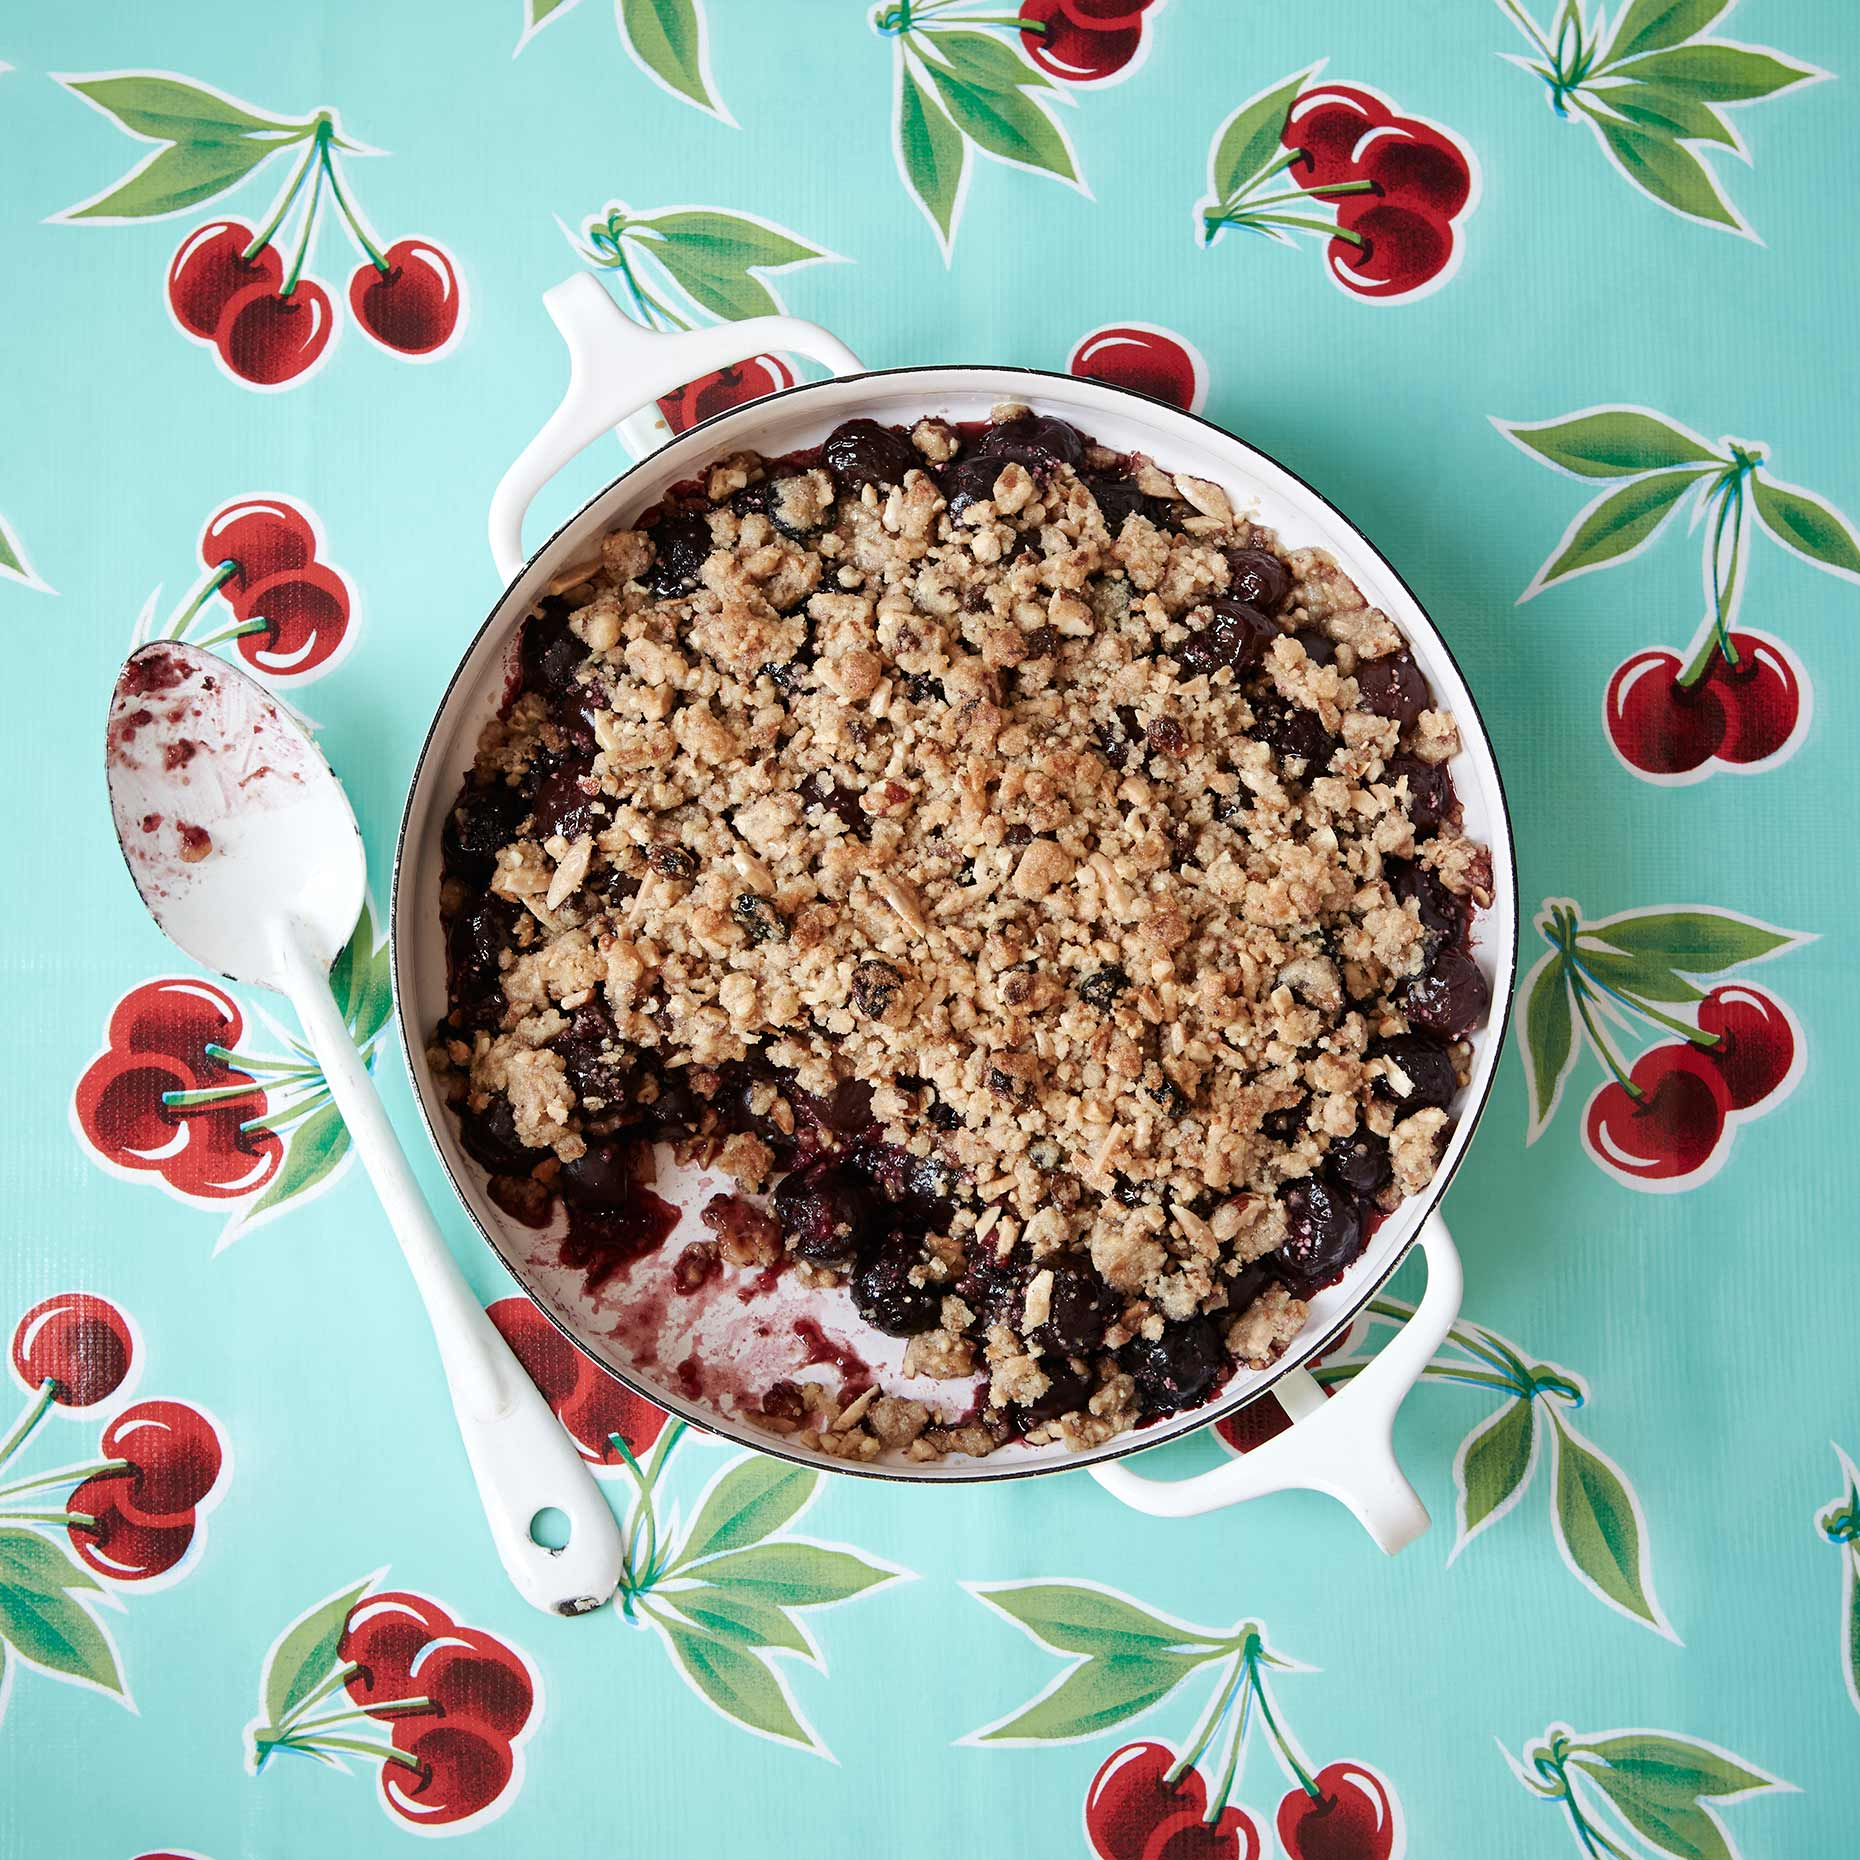 Presidents_Day_Cherry_Almond_Crisp_01_final_flat_for_web